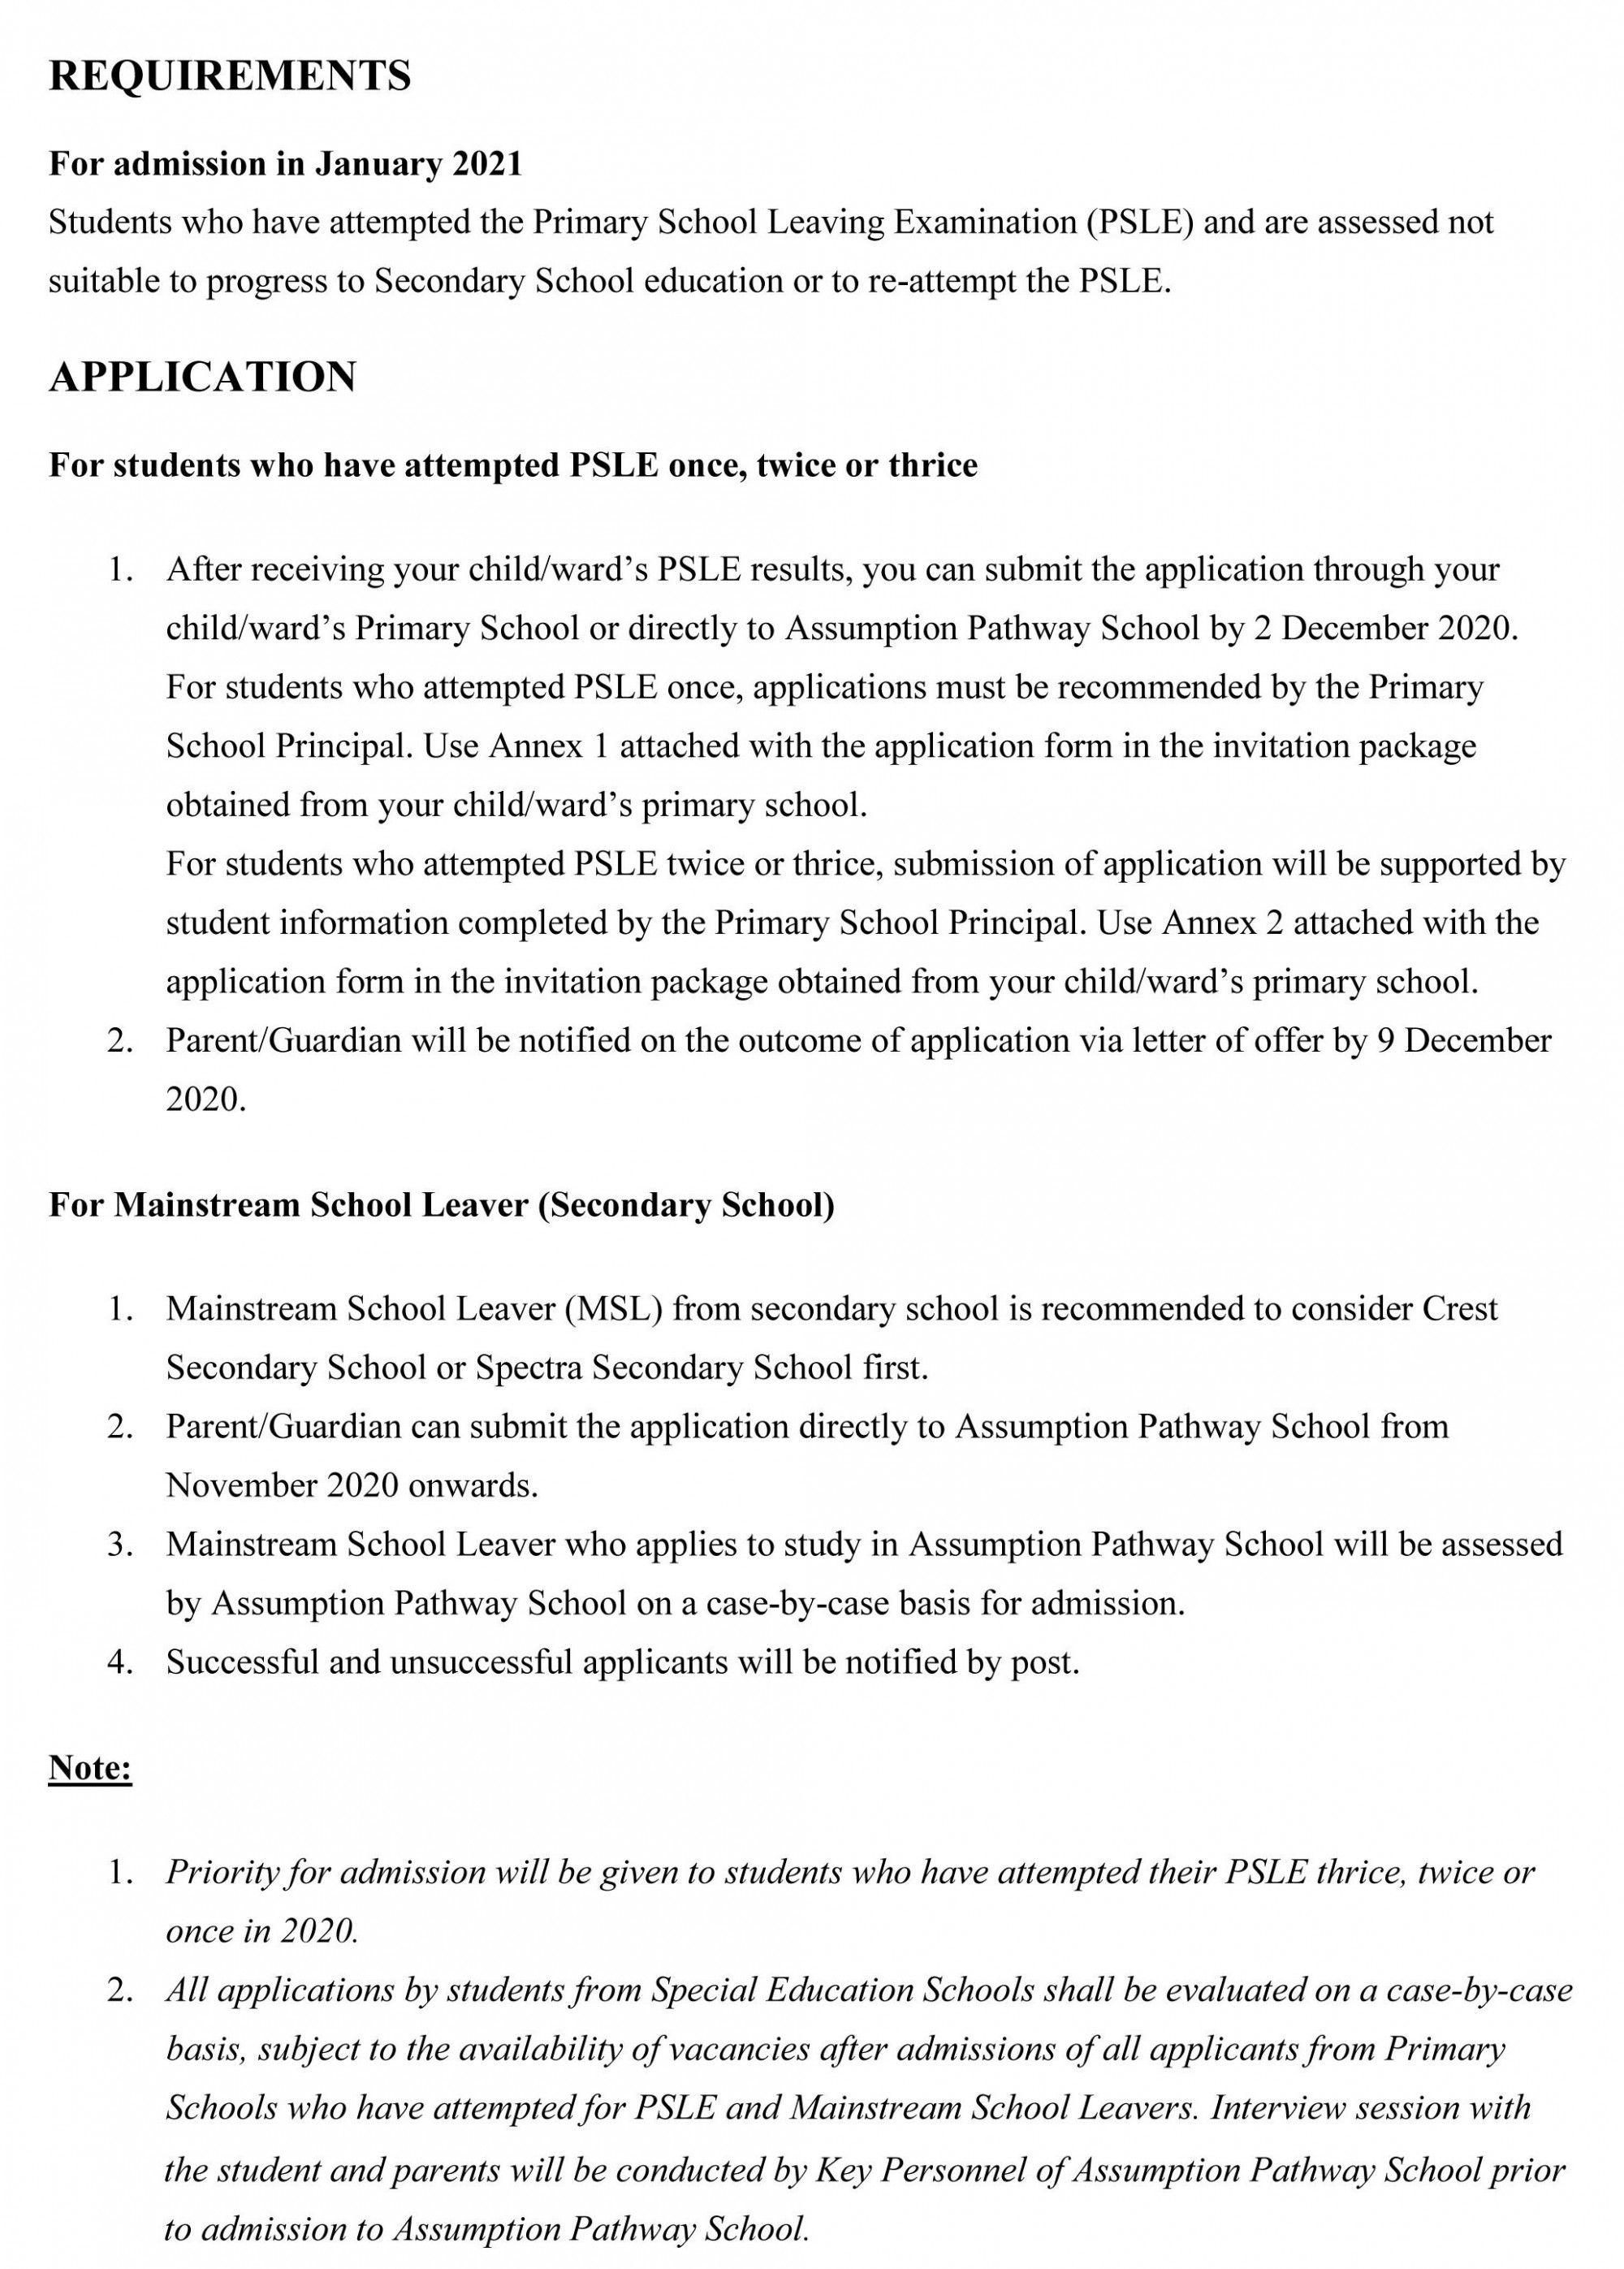 APPLICATION to APS-p1.jpg